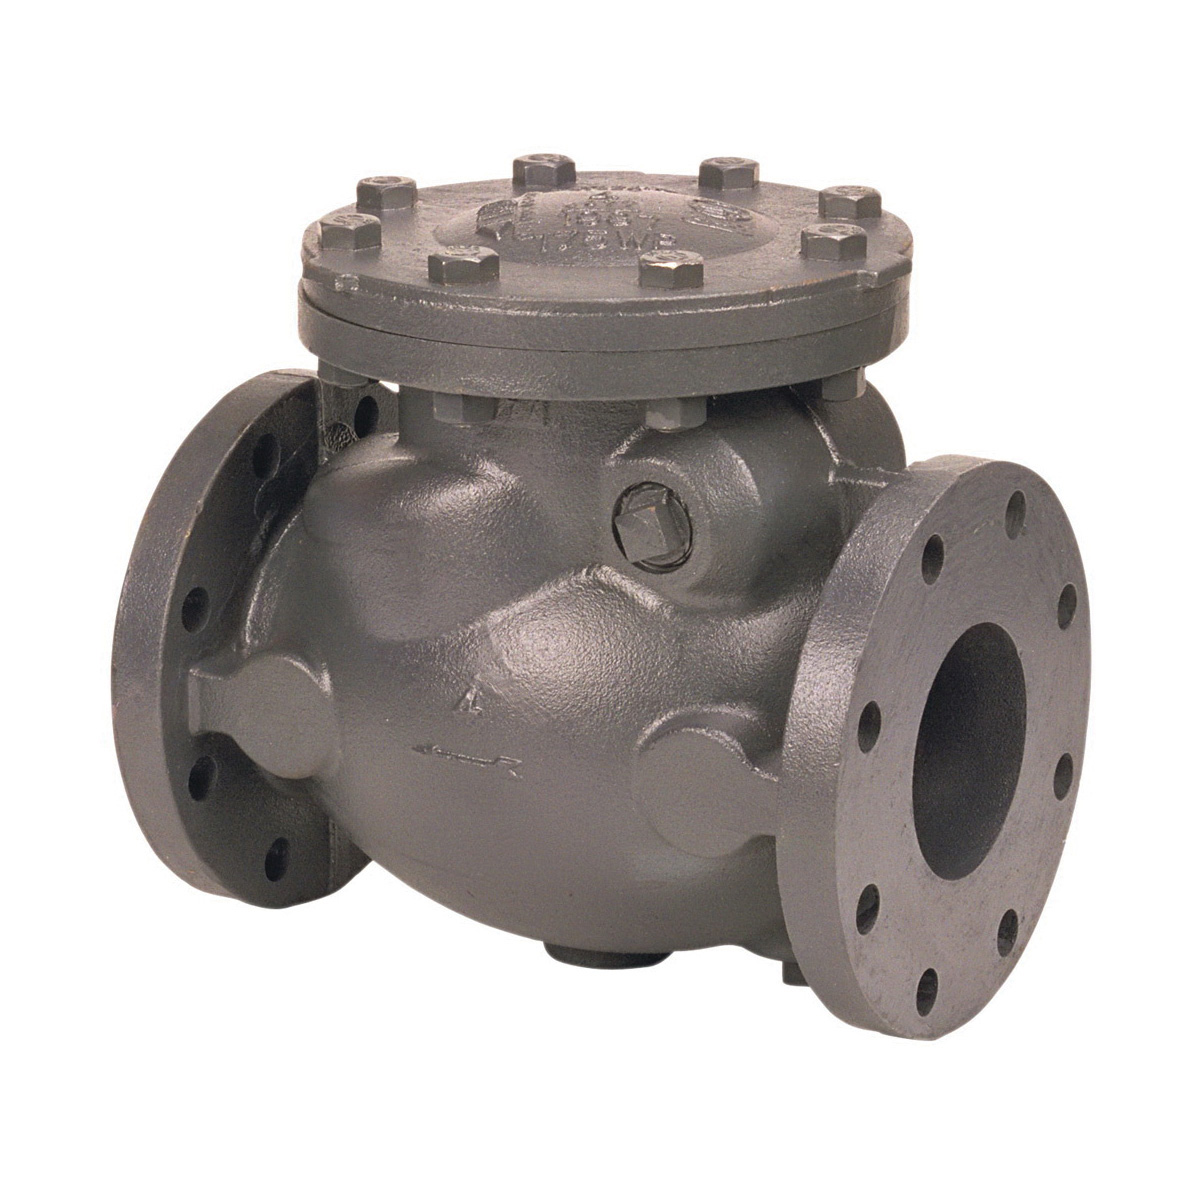 NIBCO® NHDX00H F-908-W Horizontal Swing Check Valve, 4 in, Flanged, 175 psi WWP, Cast Iron Body, ASTM A126, ASTM A307, ASTM B16, FM Approved, MSS-SP-71 Compliant, cUS UL Listed, Domestic